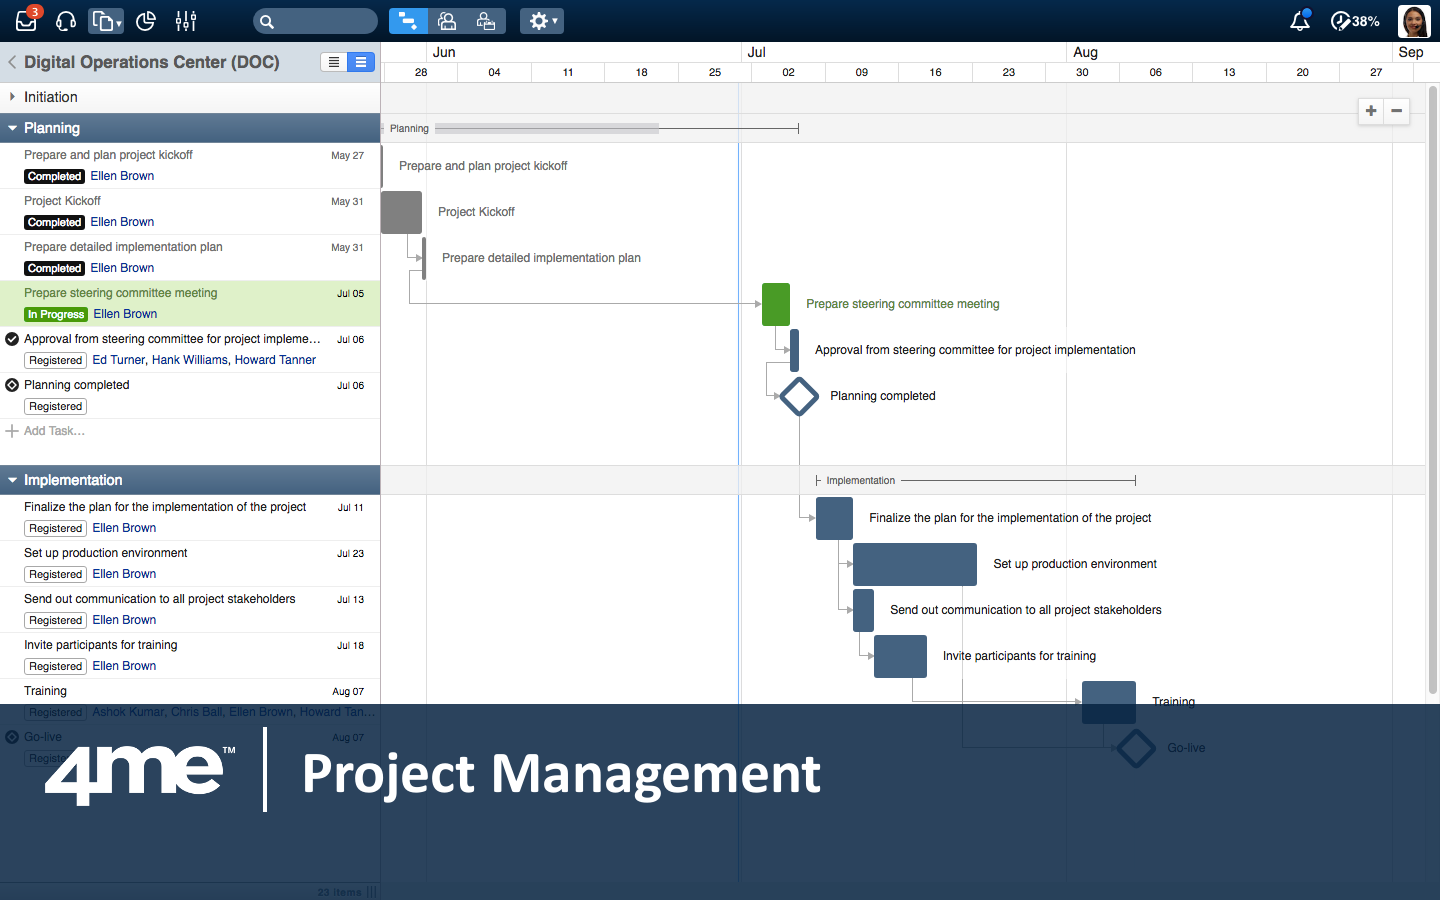 4me's project management functionality allows project managers to assign tasks to everyone in their organization. The project members can work on their project tasks free of charge.